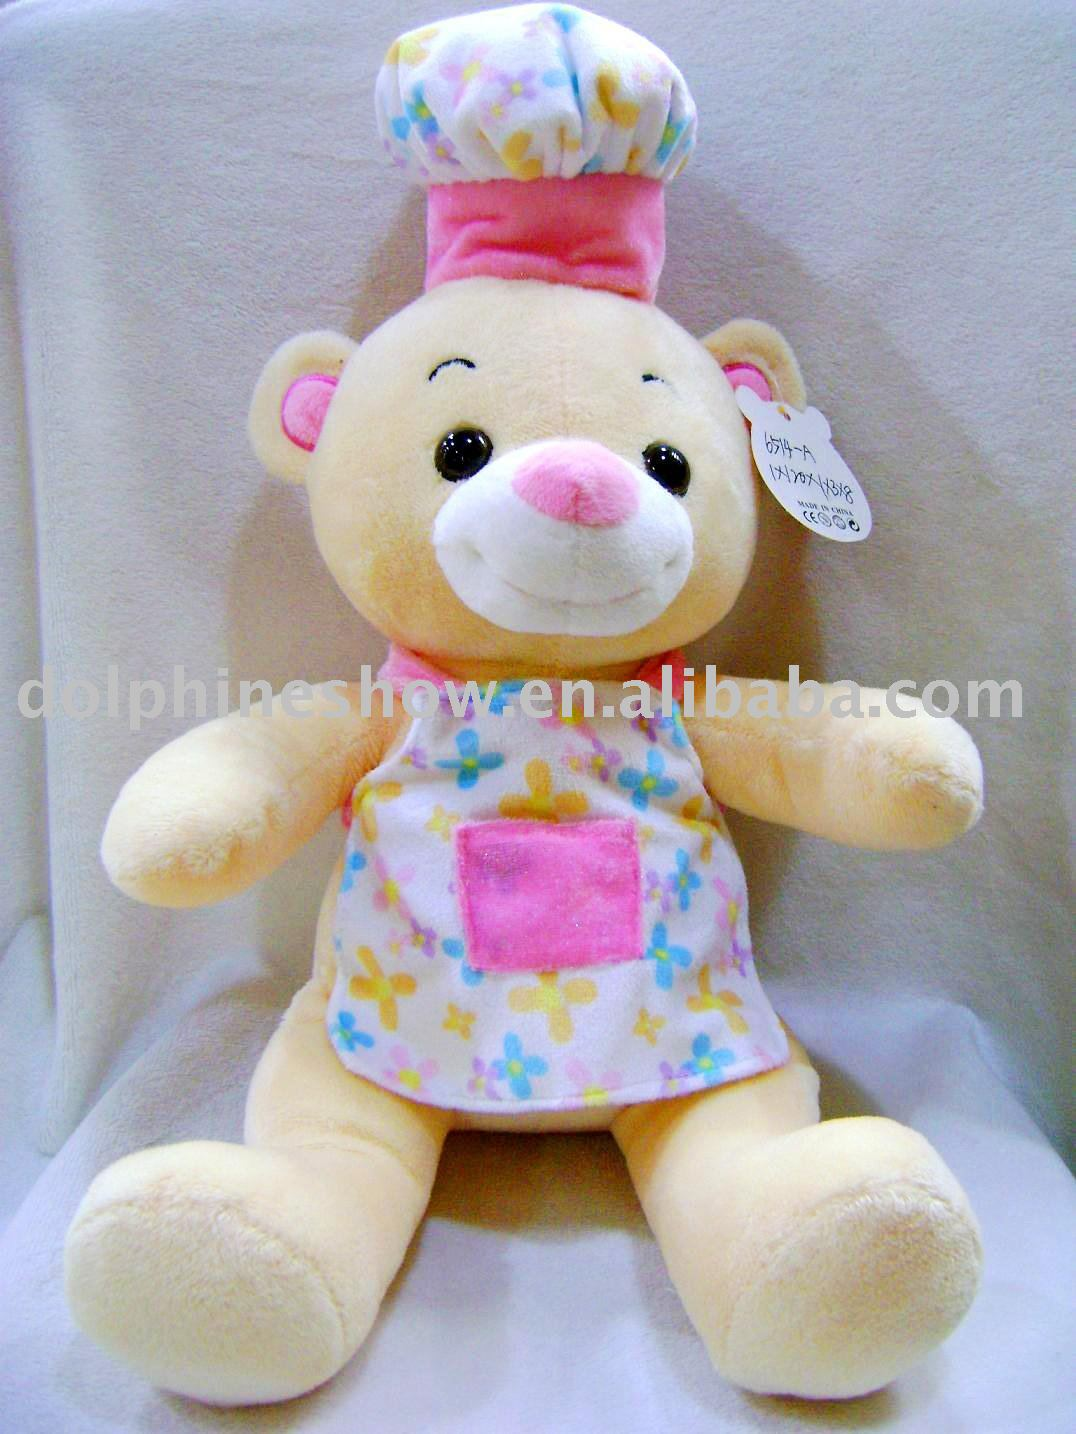 Promotional gift plush stuffed teddy bear custom logo with chef hat and apron